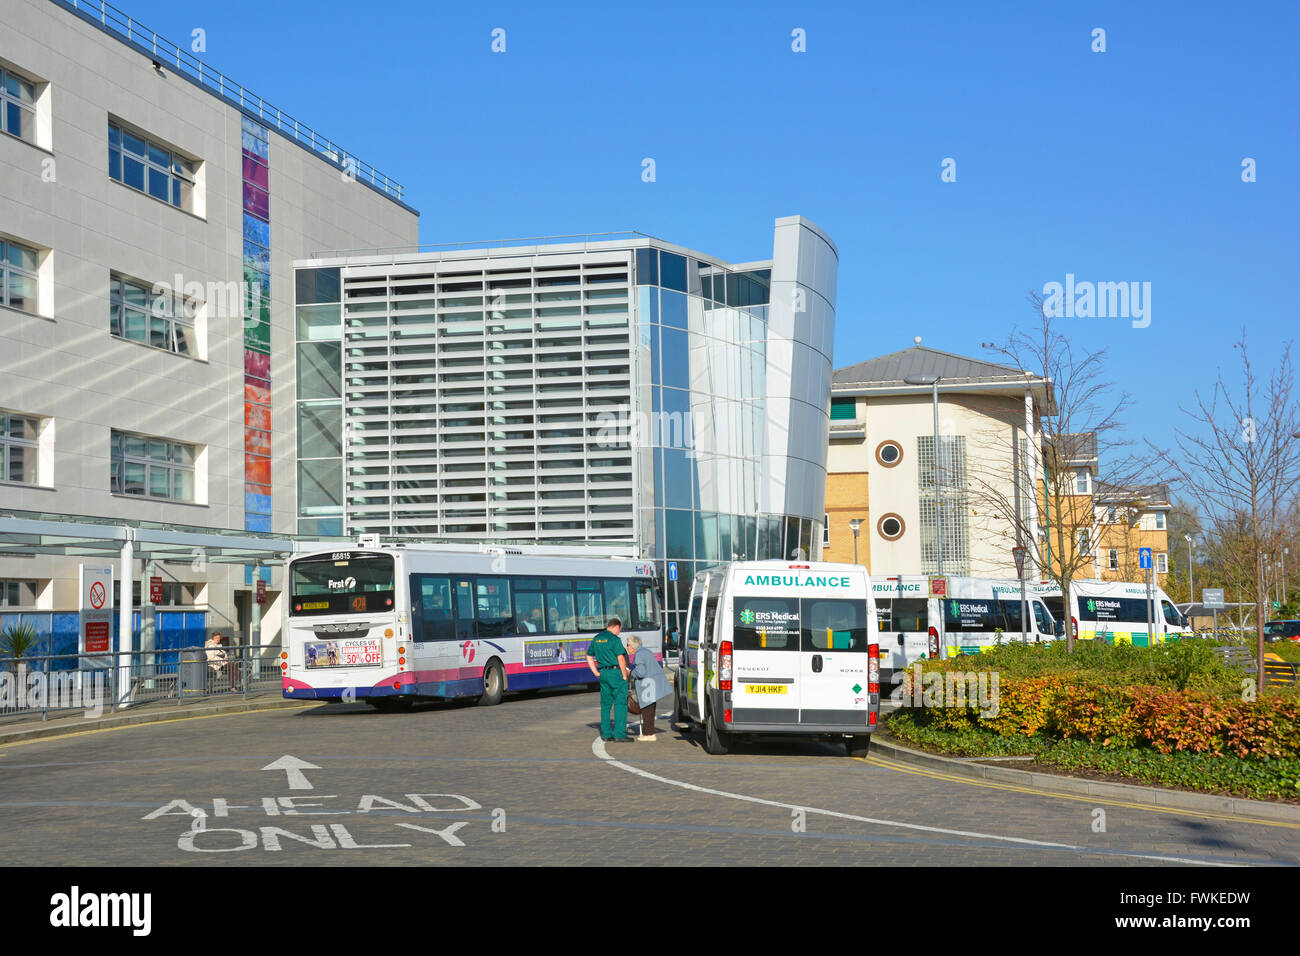 Bus stops & out patient NHS ambulances parking outside main entrance to Broomfield national health service Hospital - Stock Image